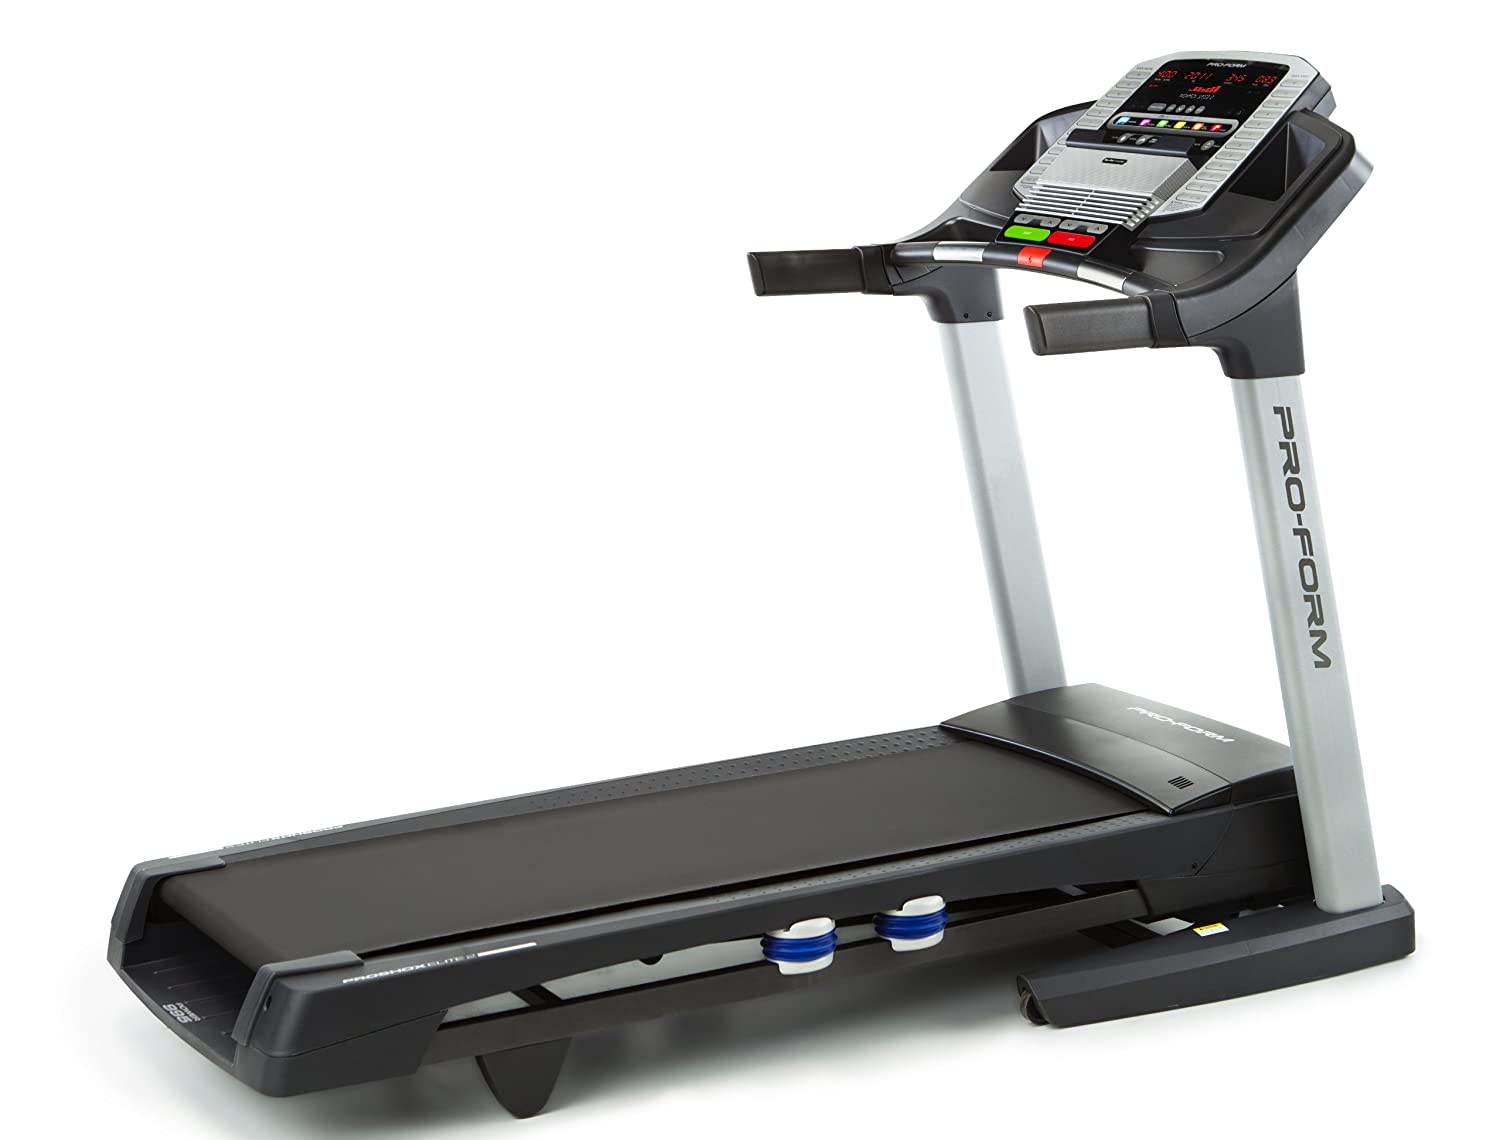 treadmill running gift ideas guide simplyfitandclean proform half marathon training